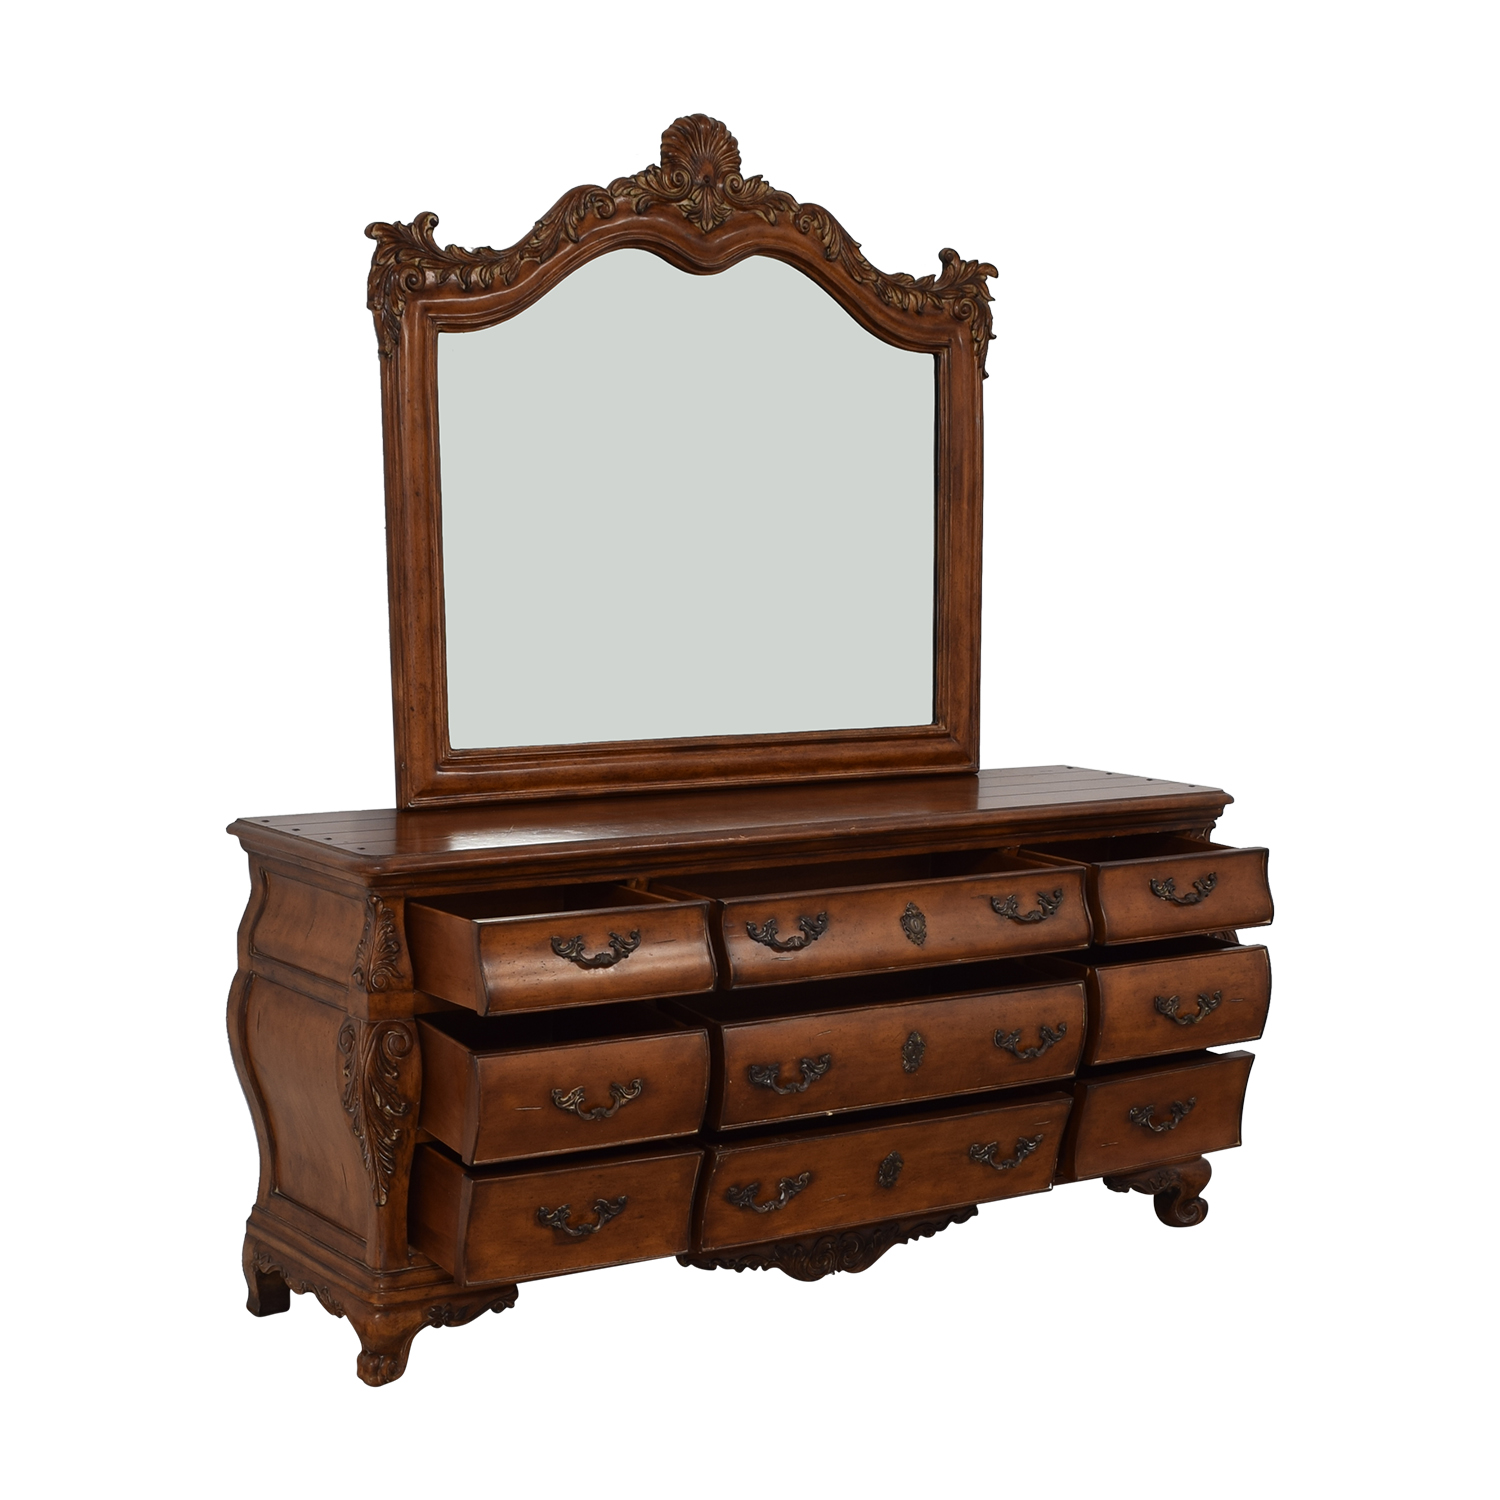 Thomasville Thomasville Chateau Provence Bombe Dresser and Landscape Mirror dimensions